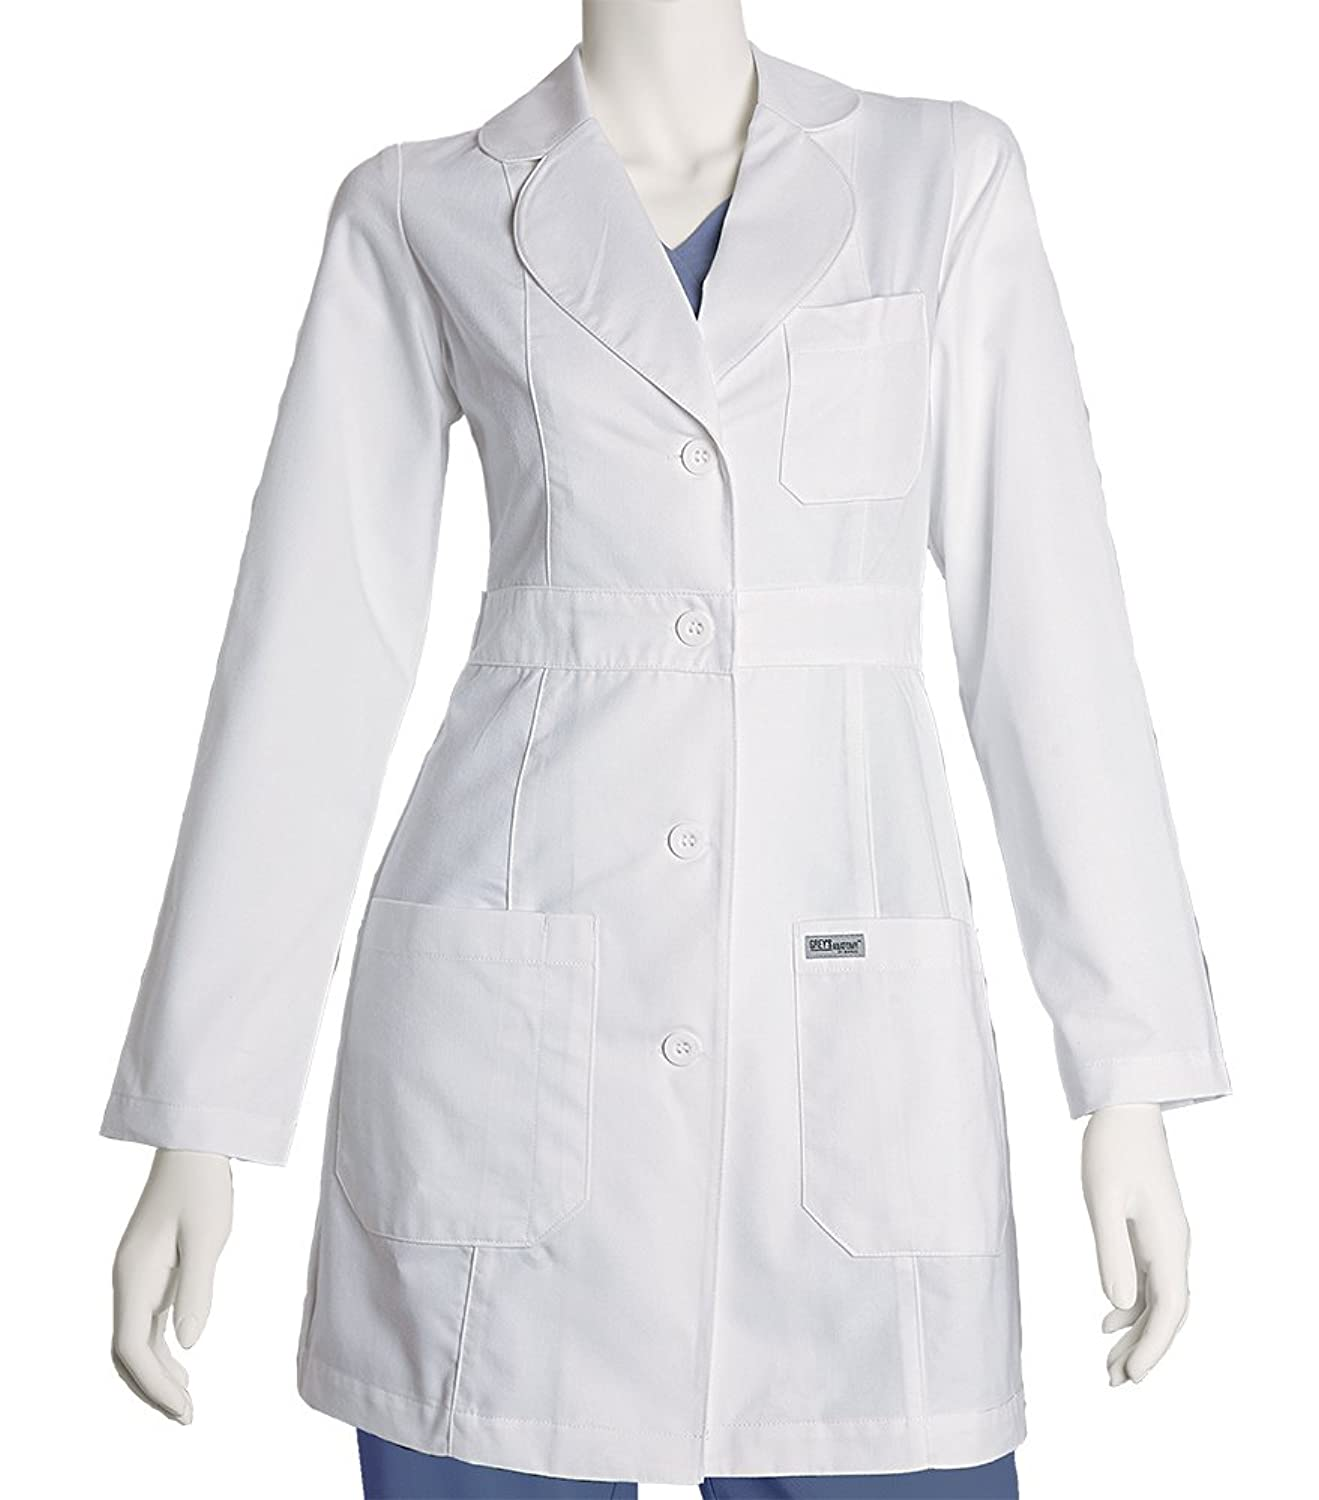 White Lab Coats For Sale Jacketin